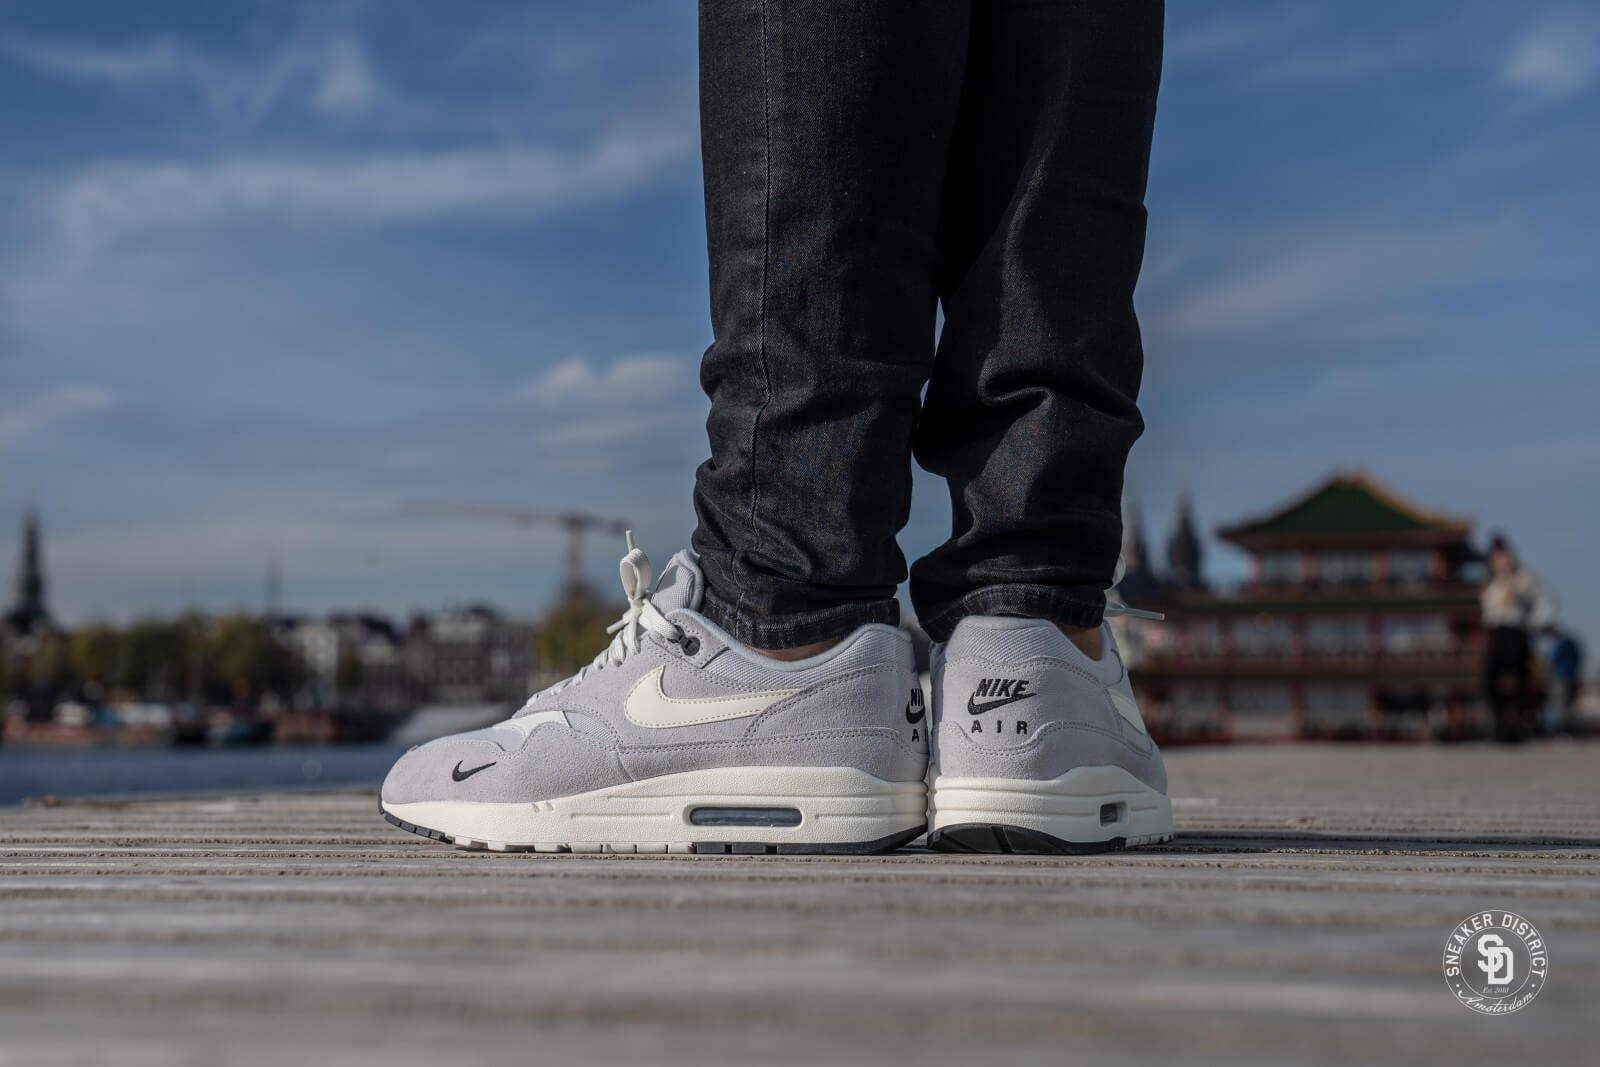 Nike Air Max 1 Premium Pure PlatinumSail Black 875844 006